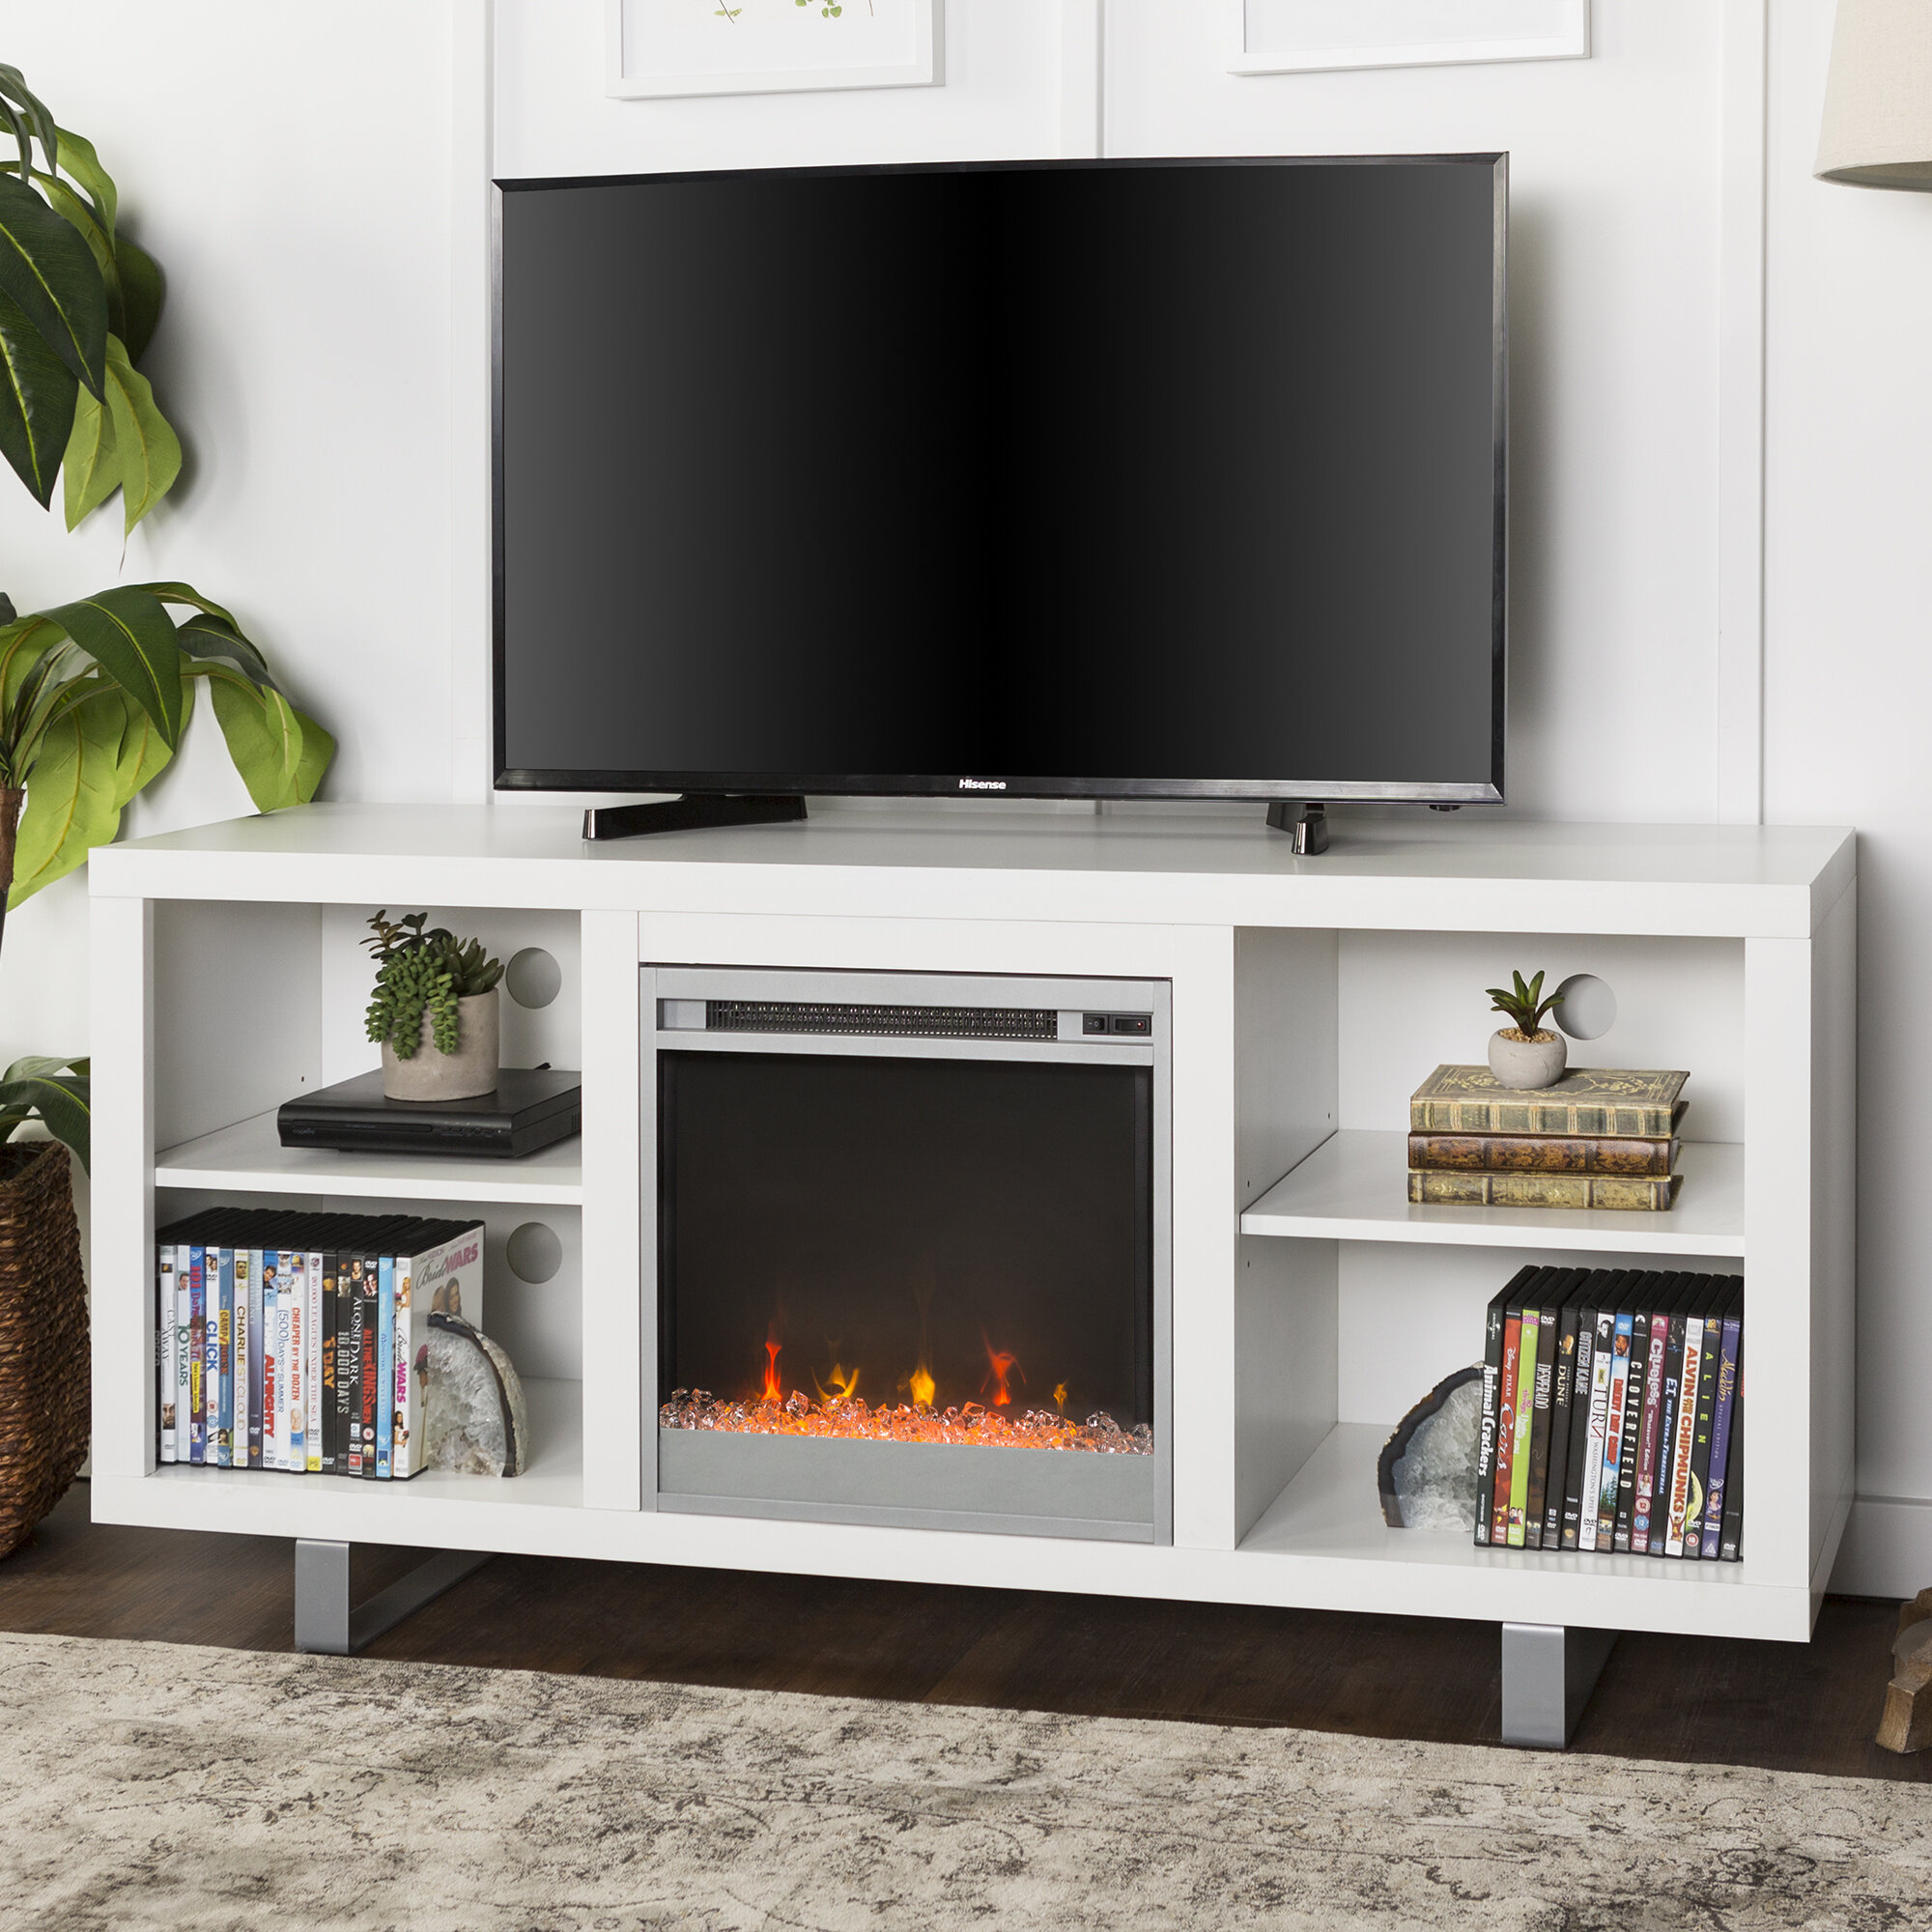 Depasquale Tv Stand For Tvs Up To 65 Inches With Electric Fireplace Included